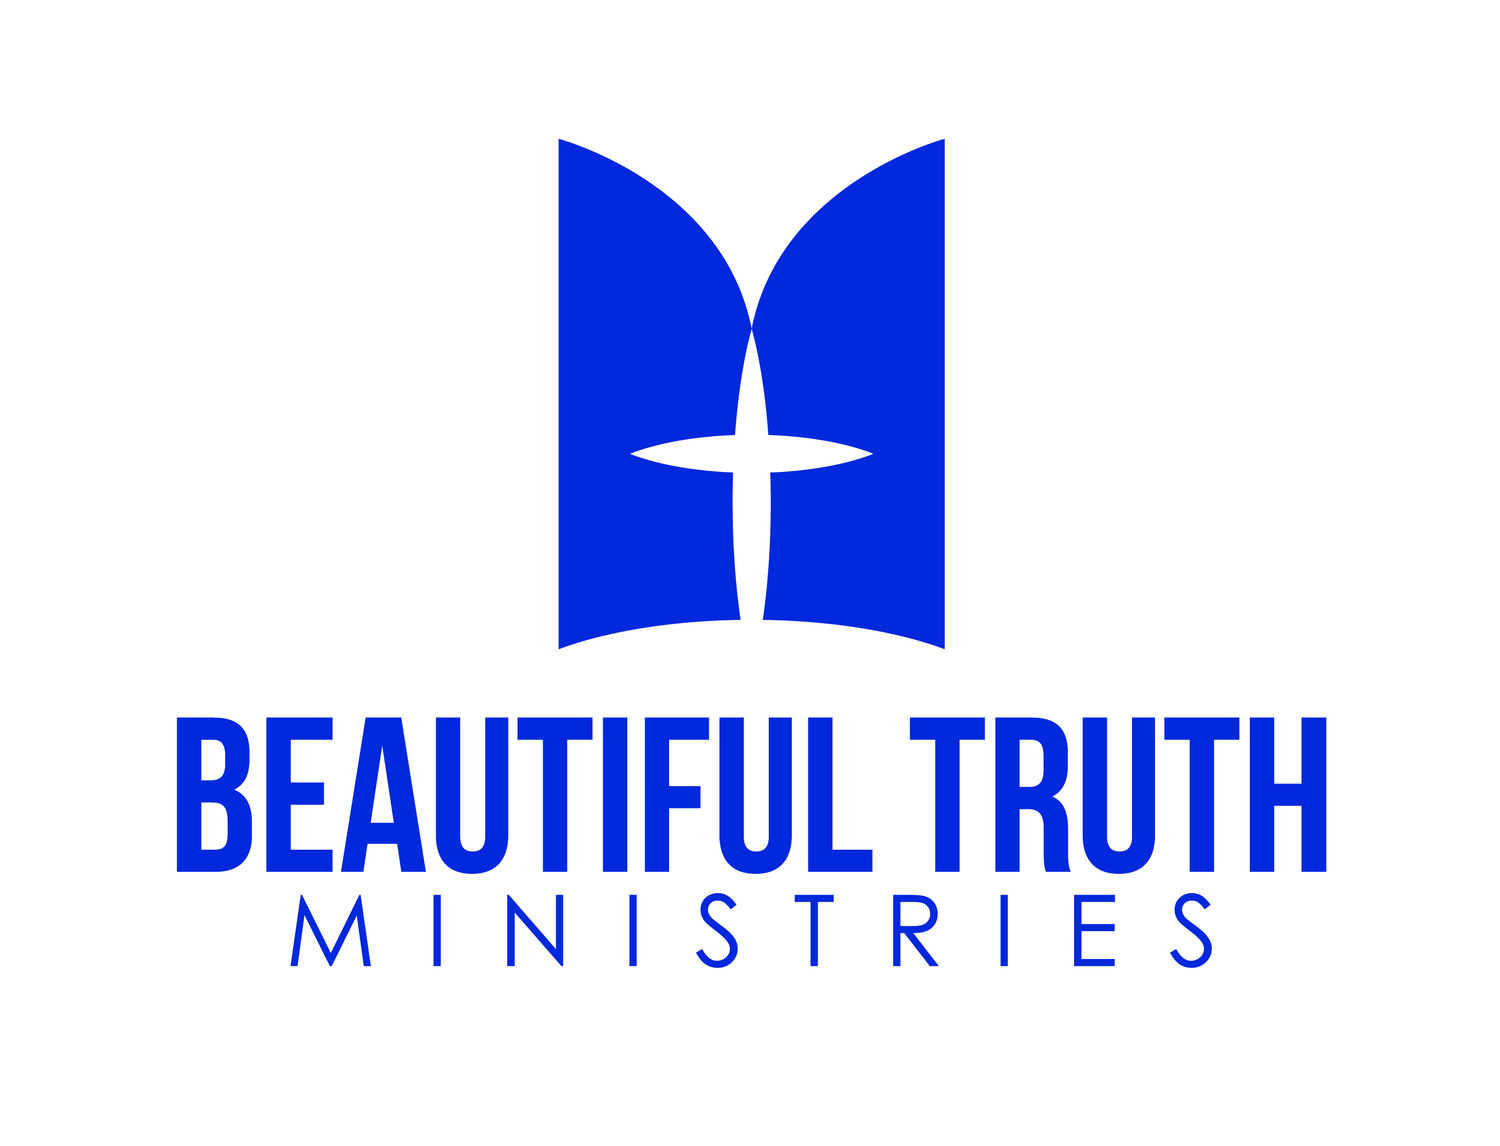 Beautiful Truth Ministries